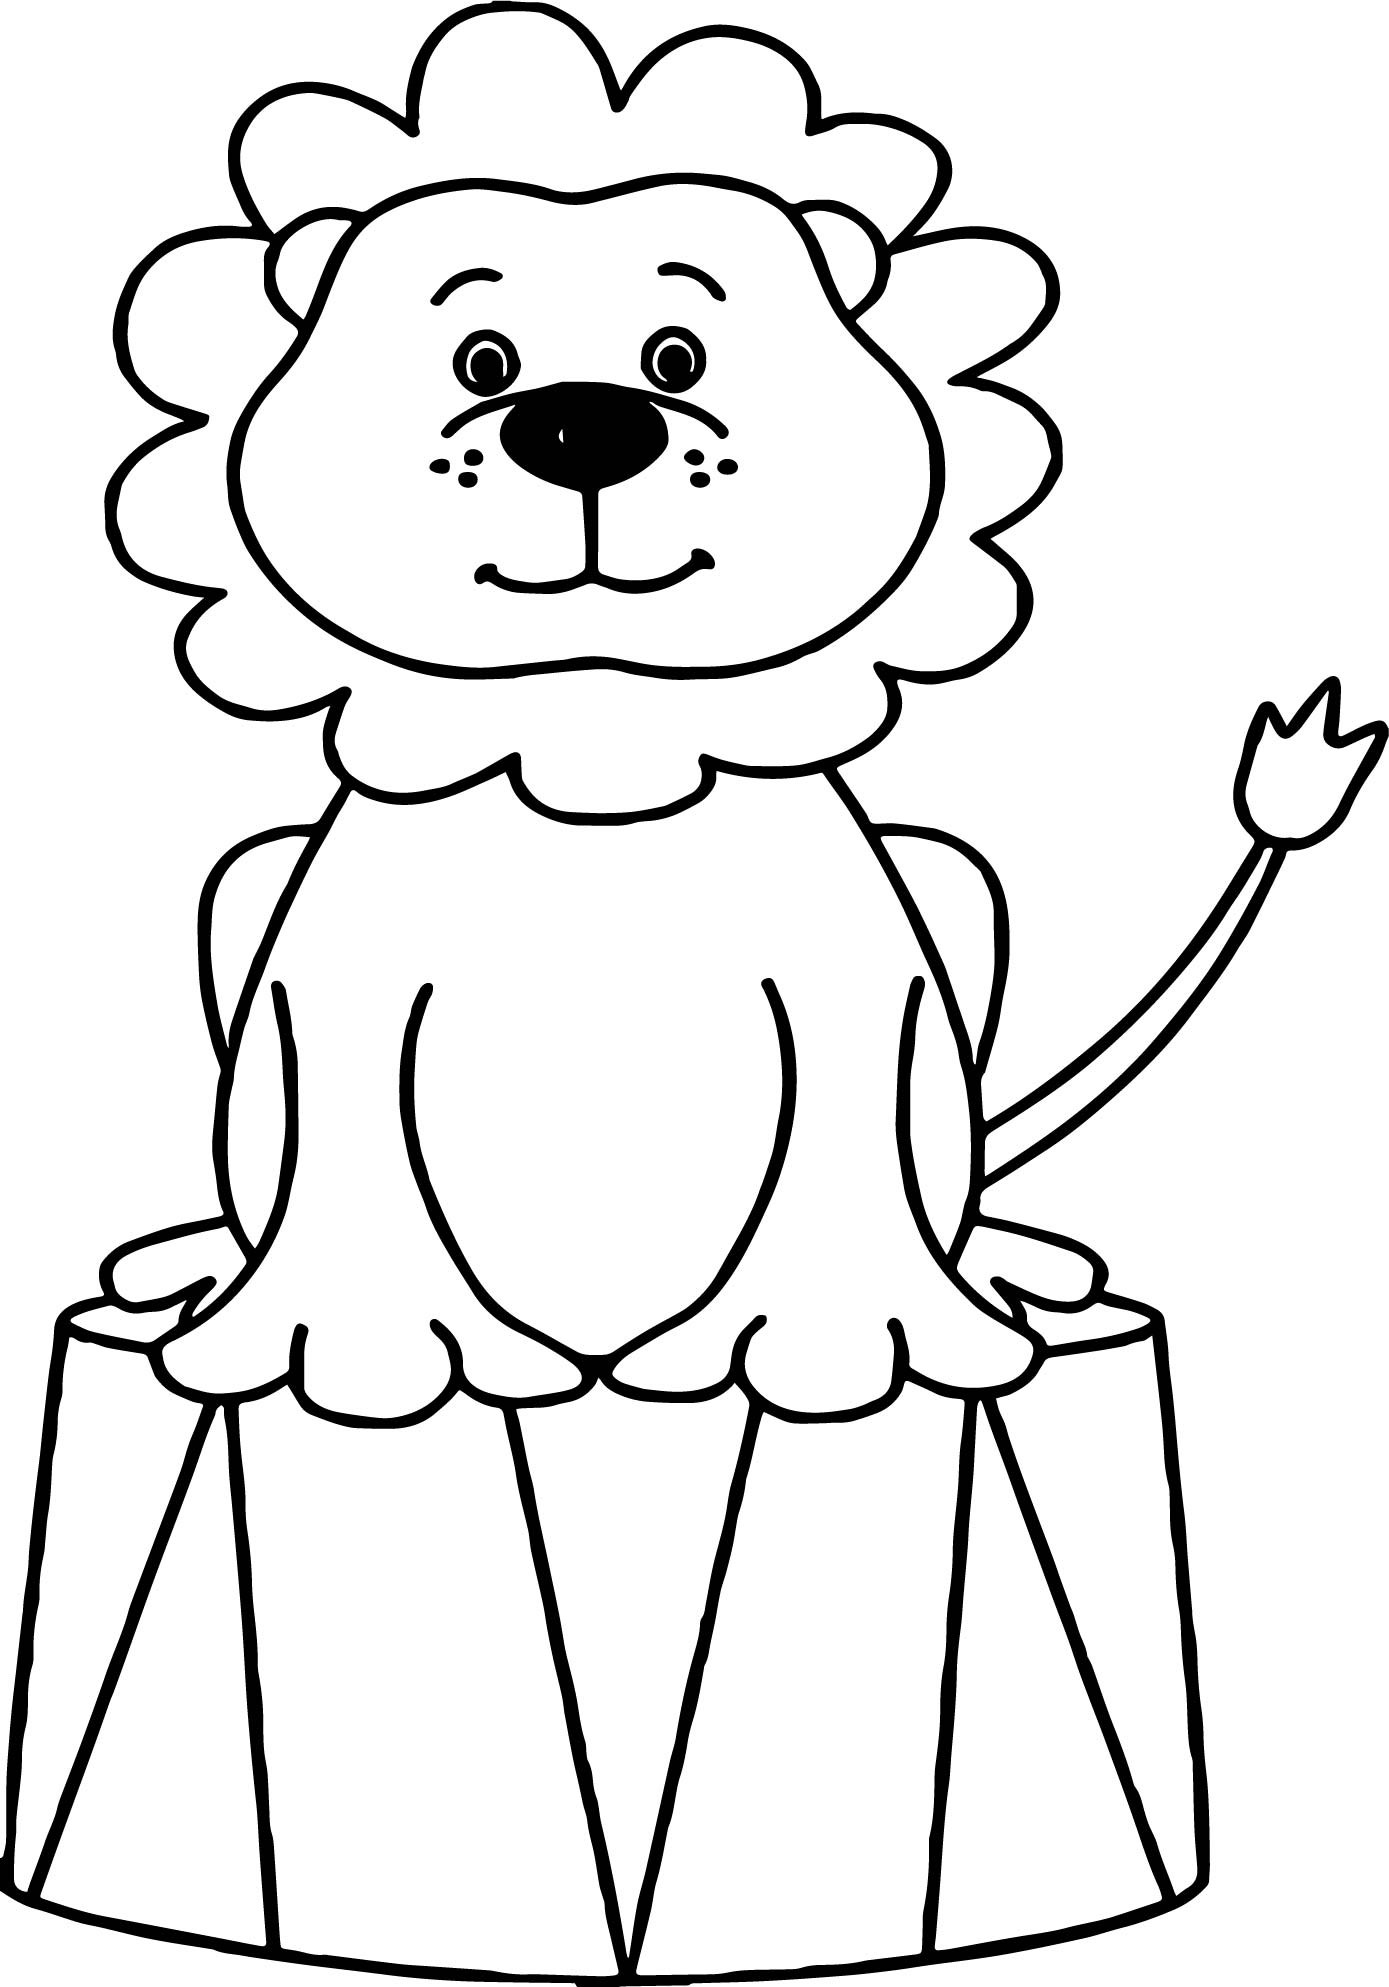 circus coloring pages for preschool circus ringmaster coloring pages at getcoloringscom pages for circus coloring preschool